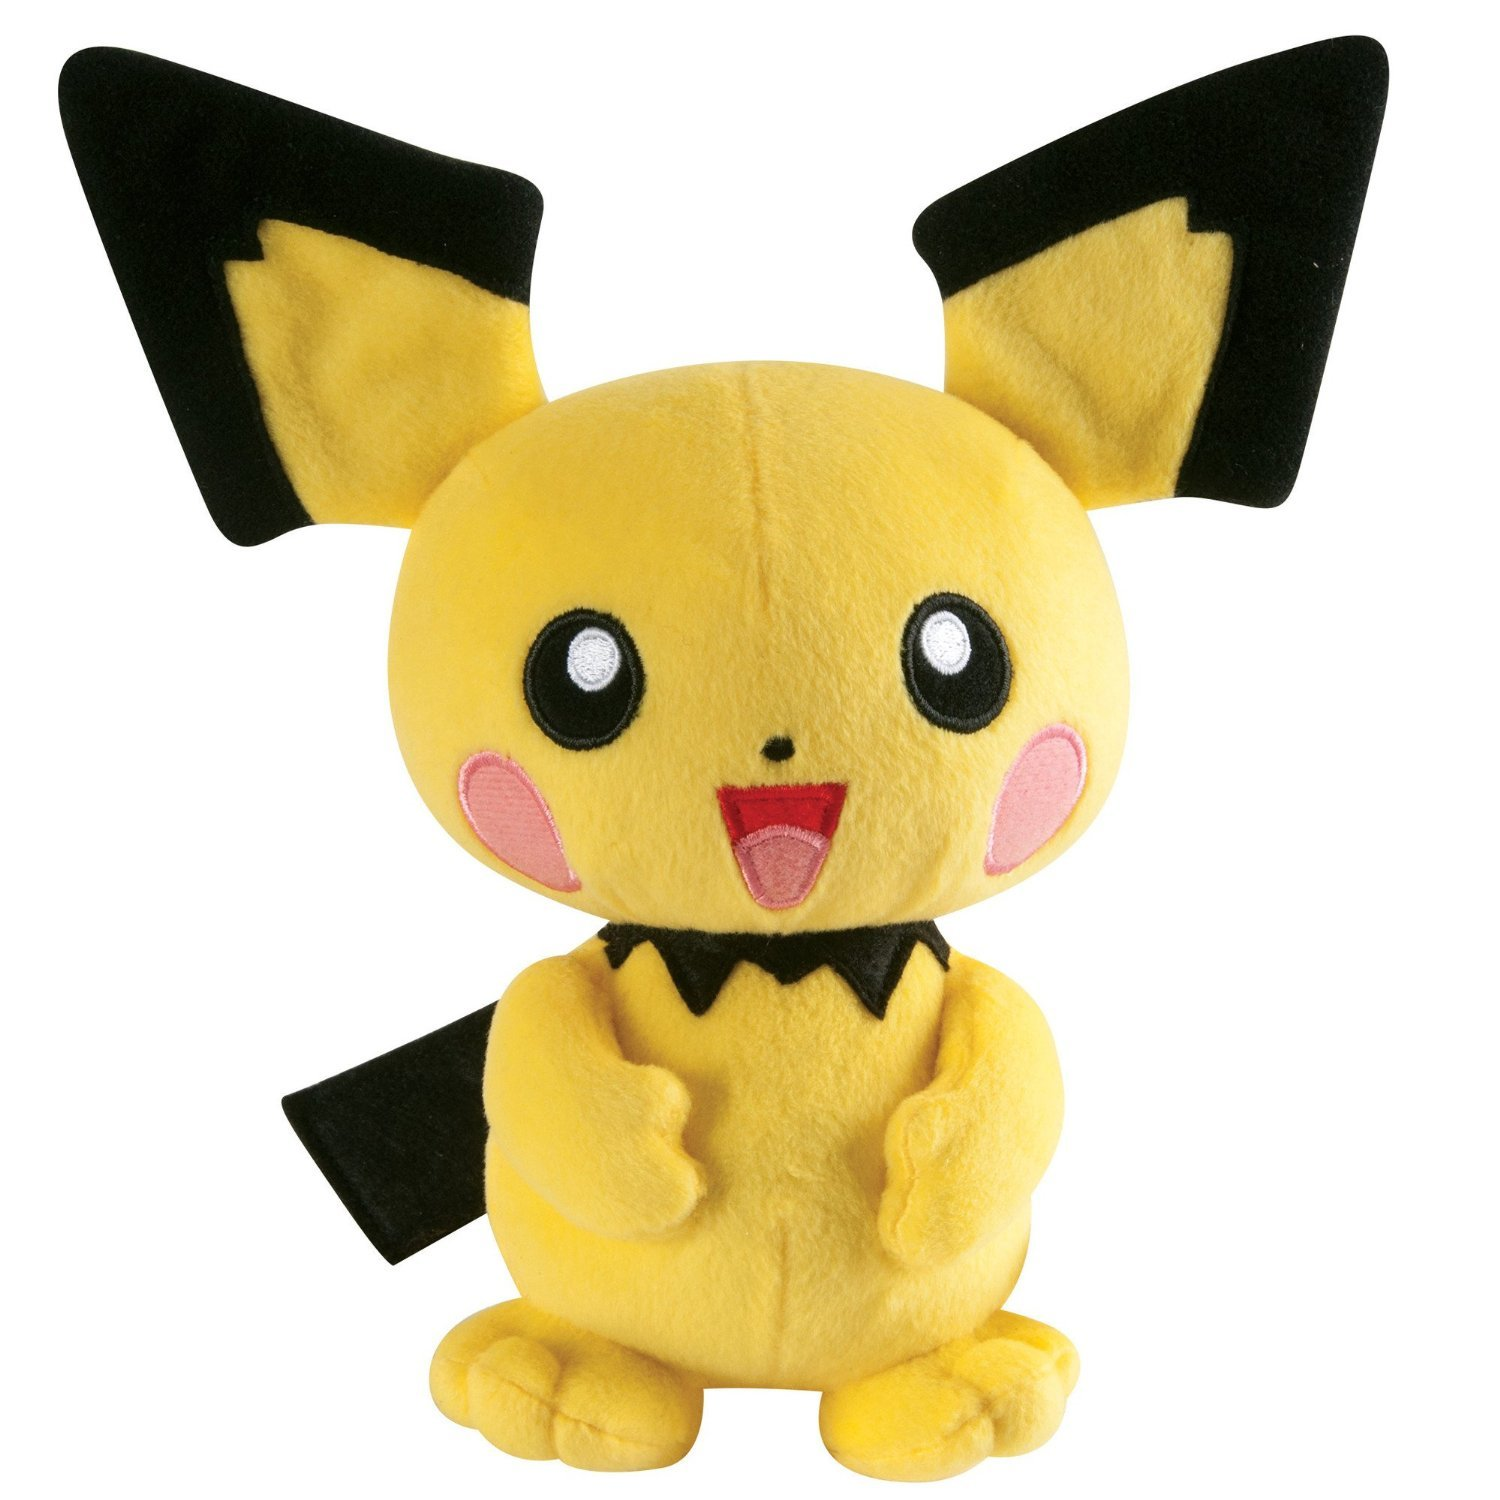 "Pokémon - 8"" Pichu - Basic Plush image"